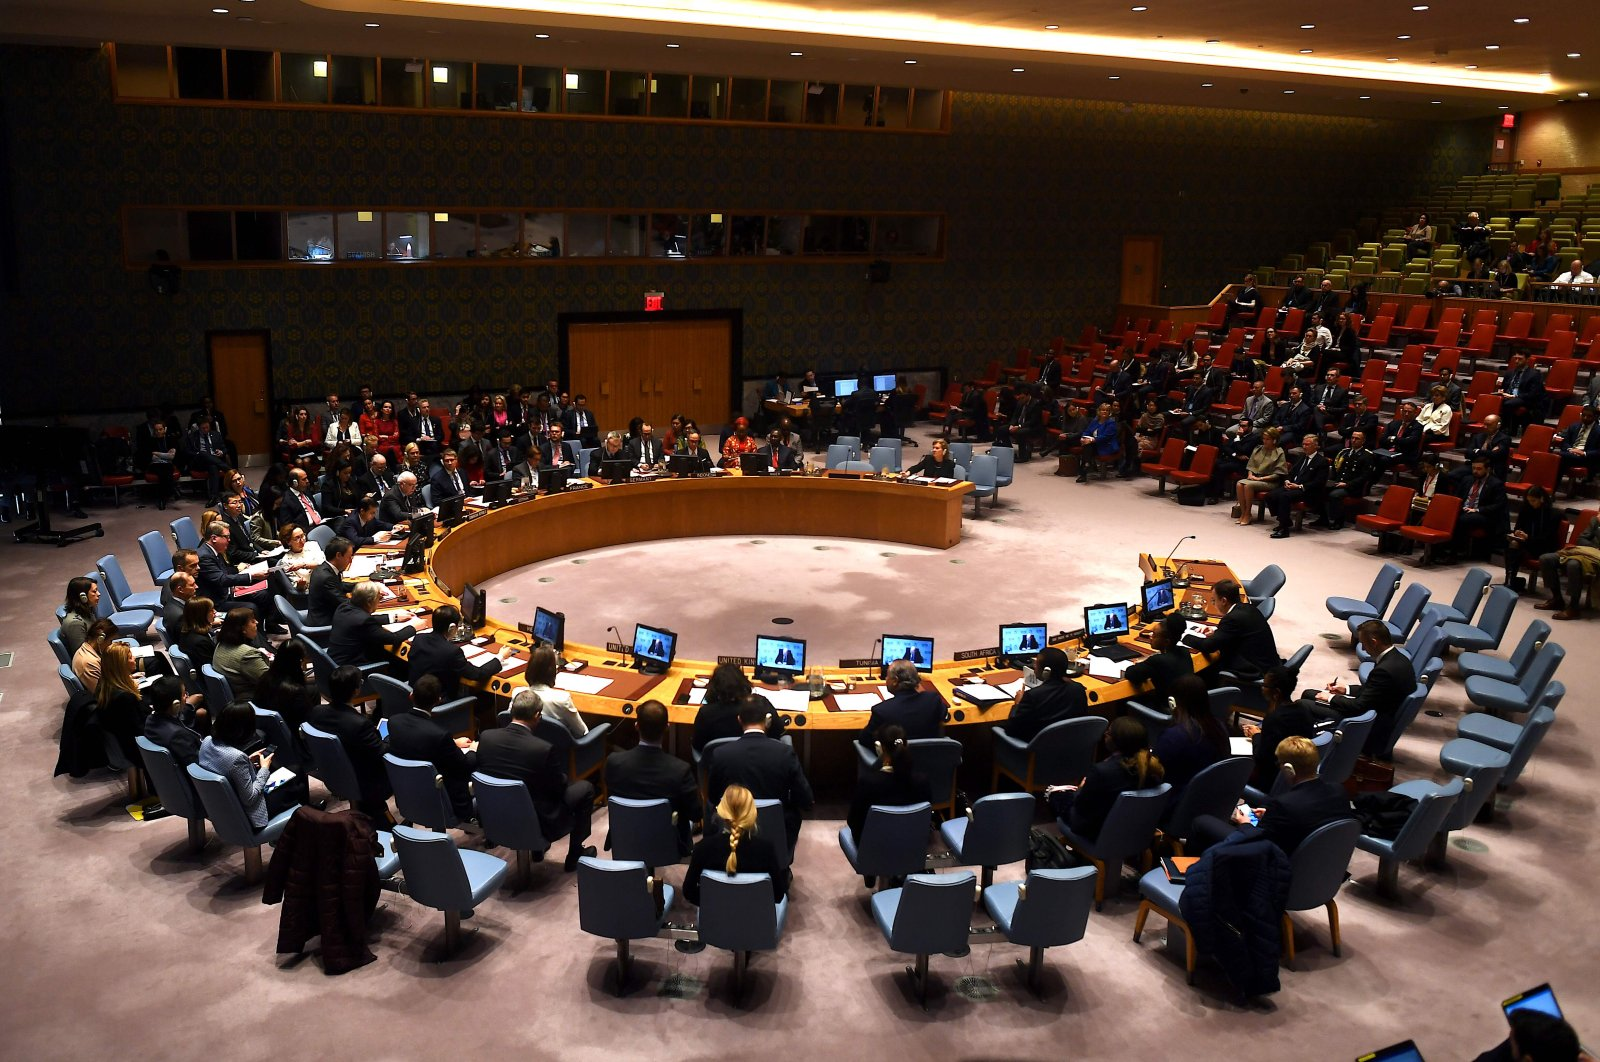 This Feb. 12, 2020, file photo, shows United Nations Security Council meeting at the U.N. headquarters in New York. (AFP Photo)